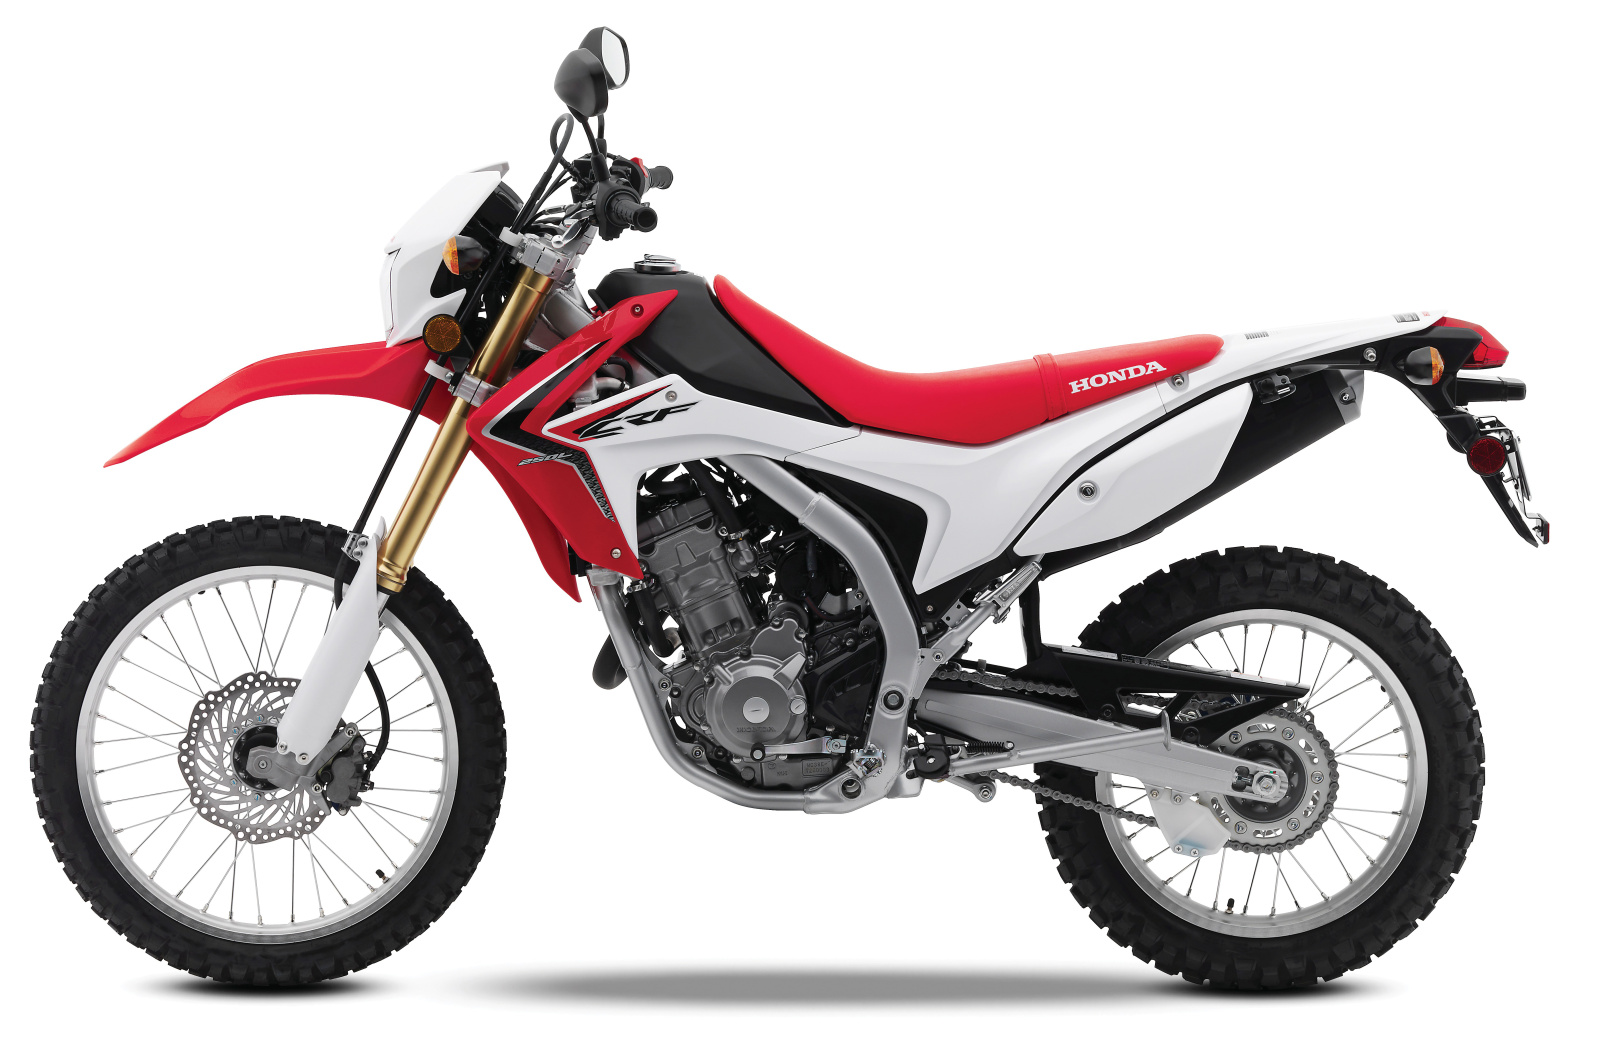 honda crf 250 l 2012. Black Bedroom Furniture Sets. Home Design Ideas